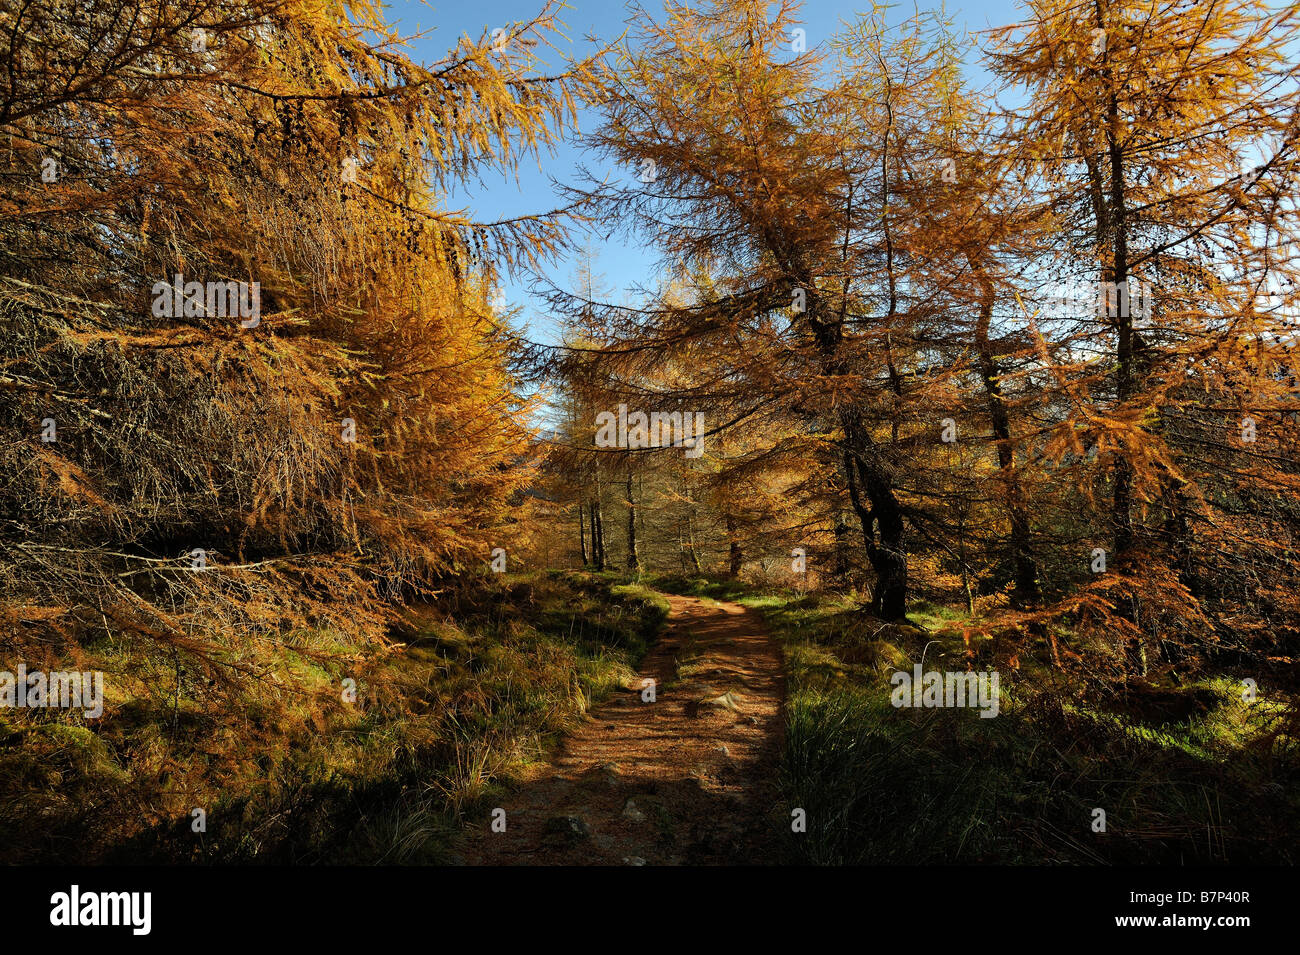 Larch trees in autumn colours along the trail of the West Highland Way near Crianlarich Scottish Highlands UK - Stock Image